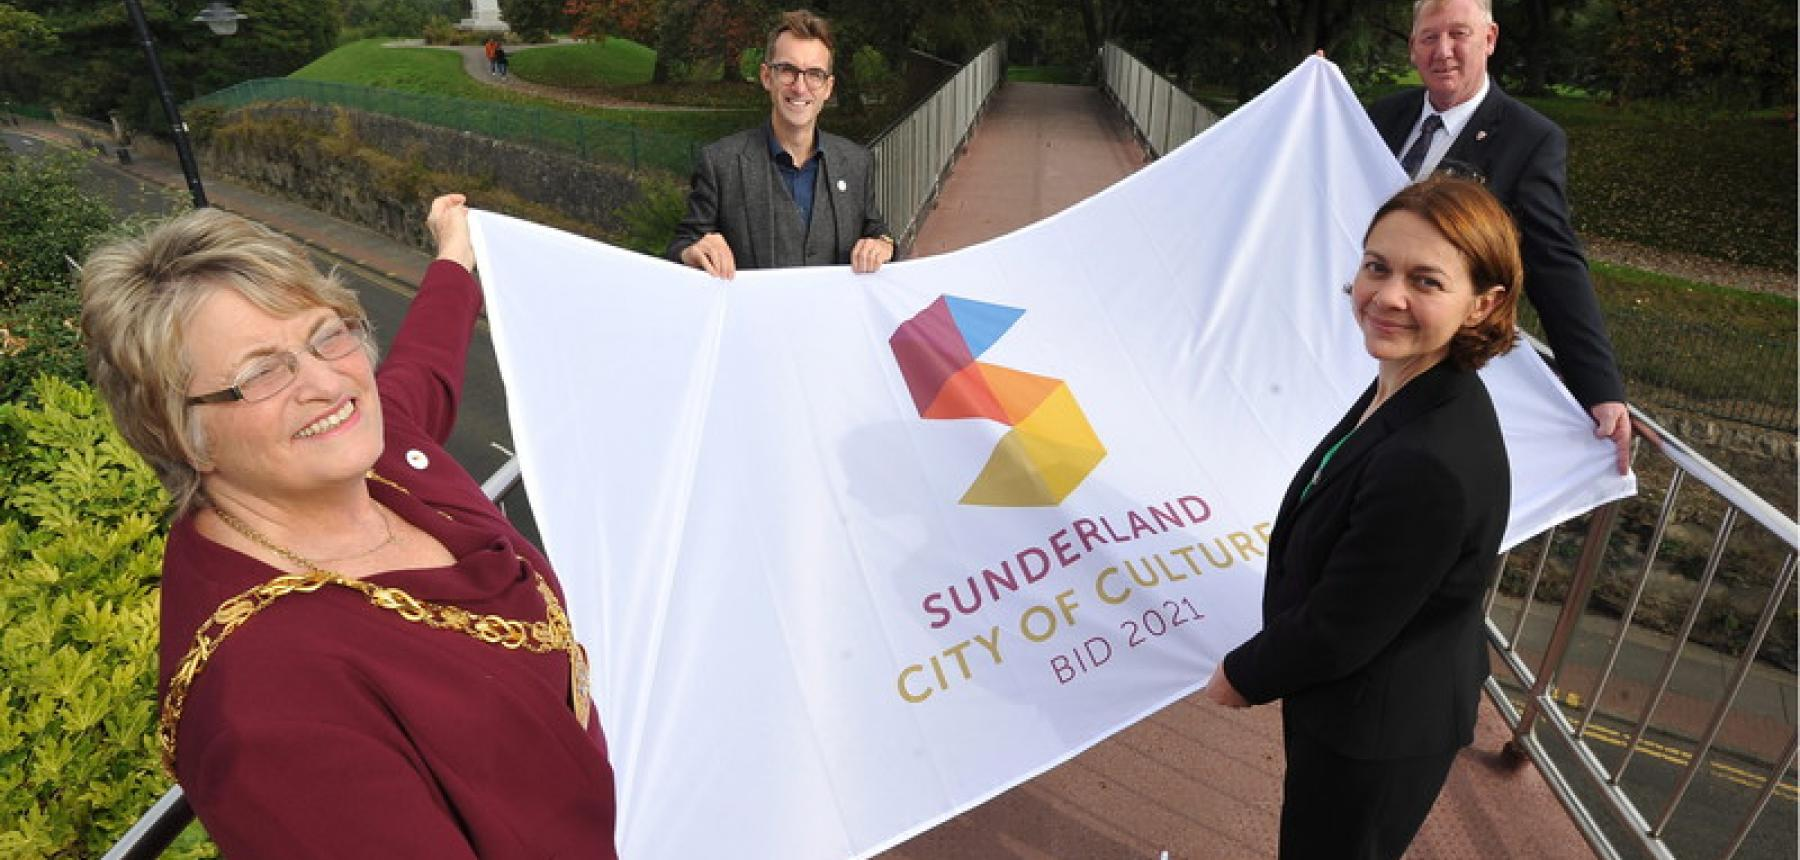 Picture of members of the cultural partnership with the city of culture flag.